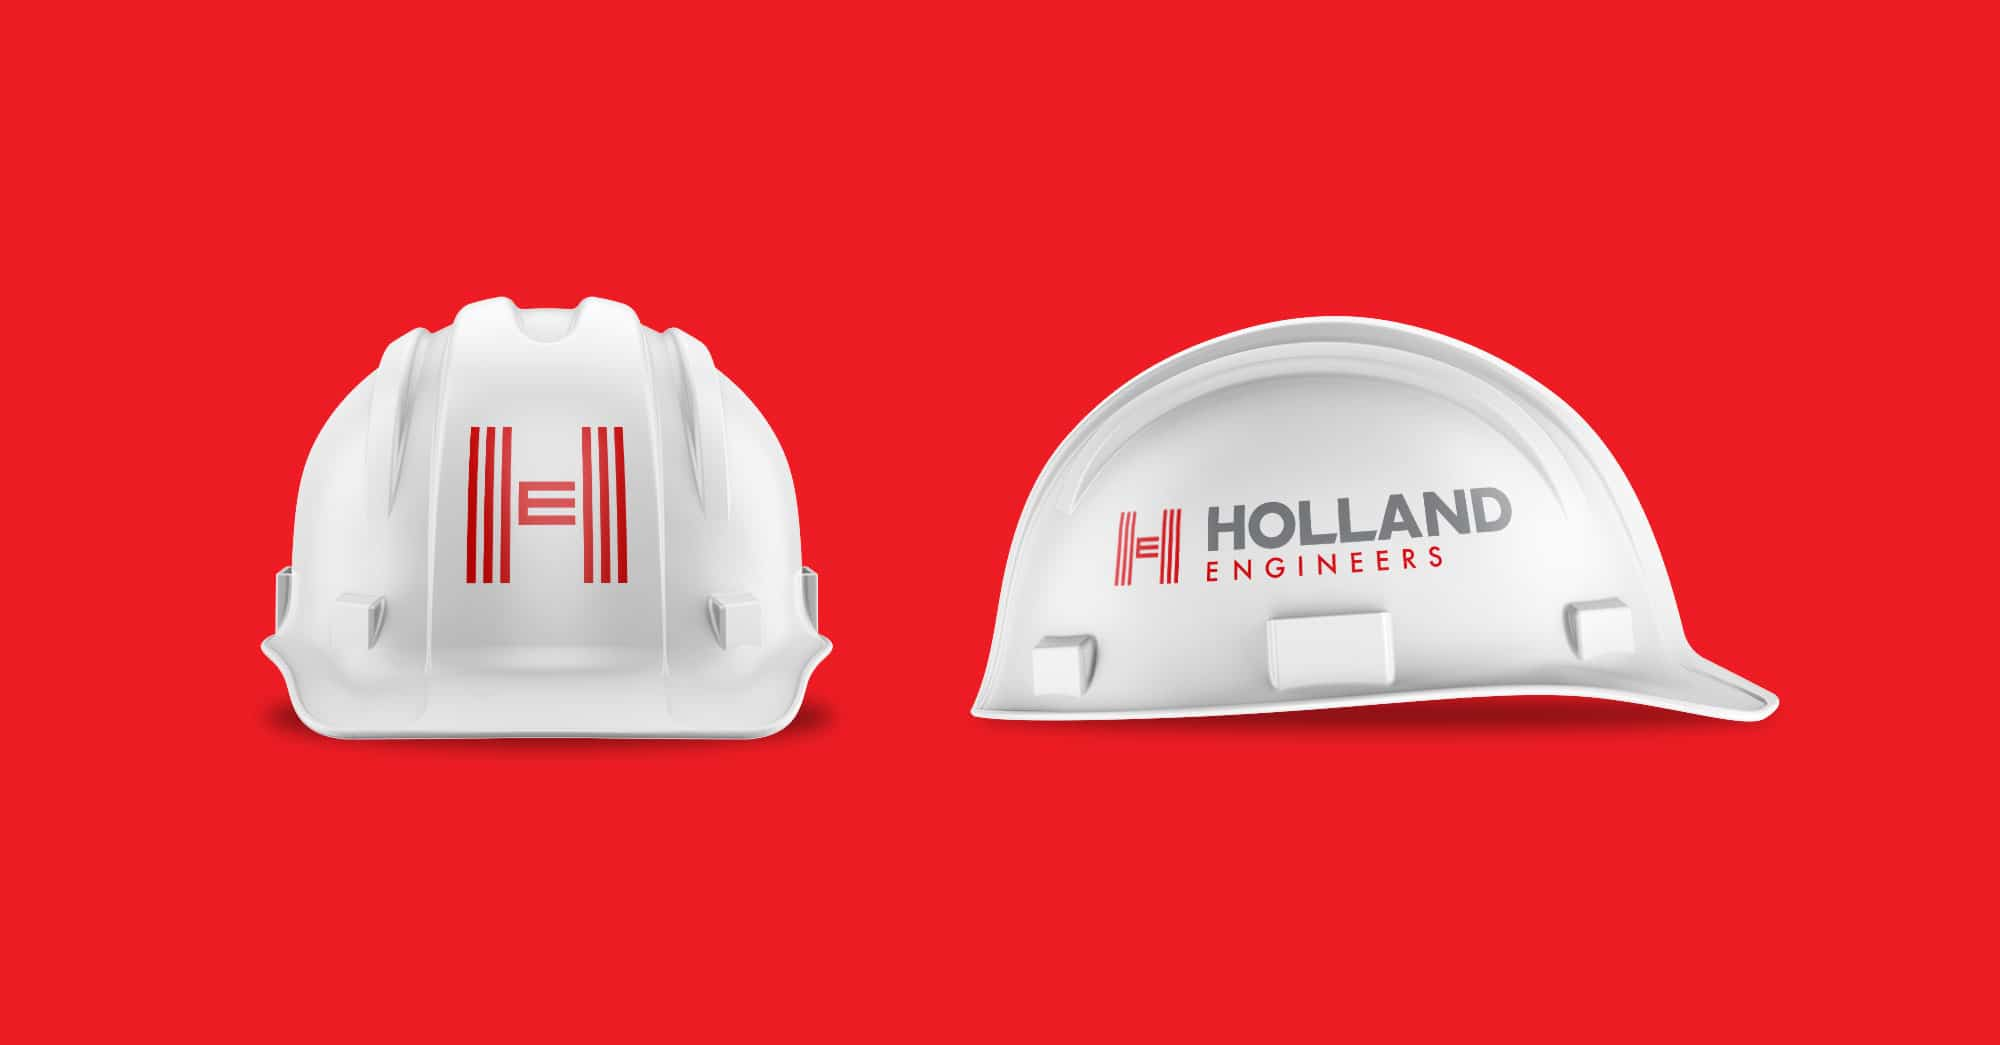 Holland Engineers hard hat design